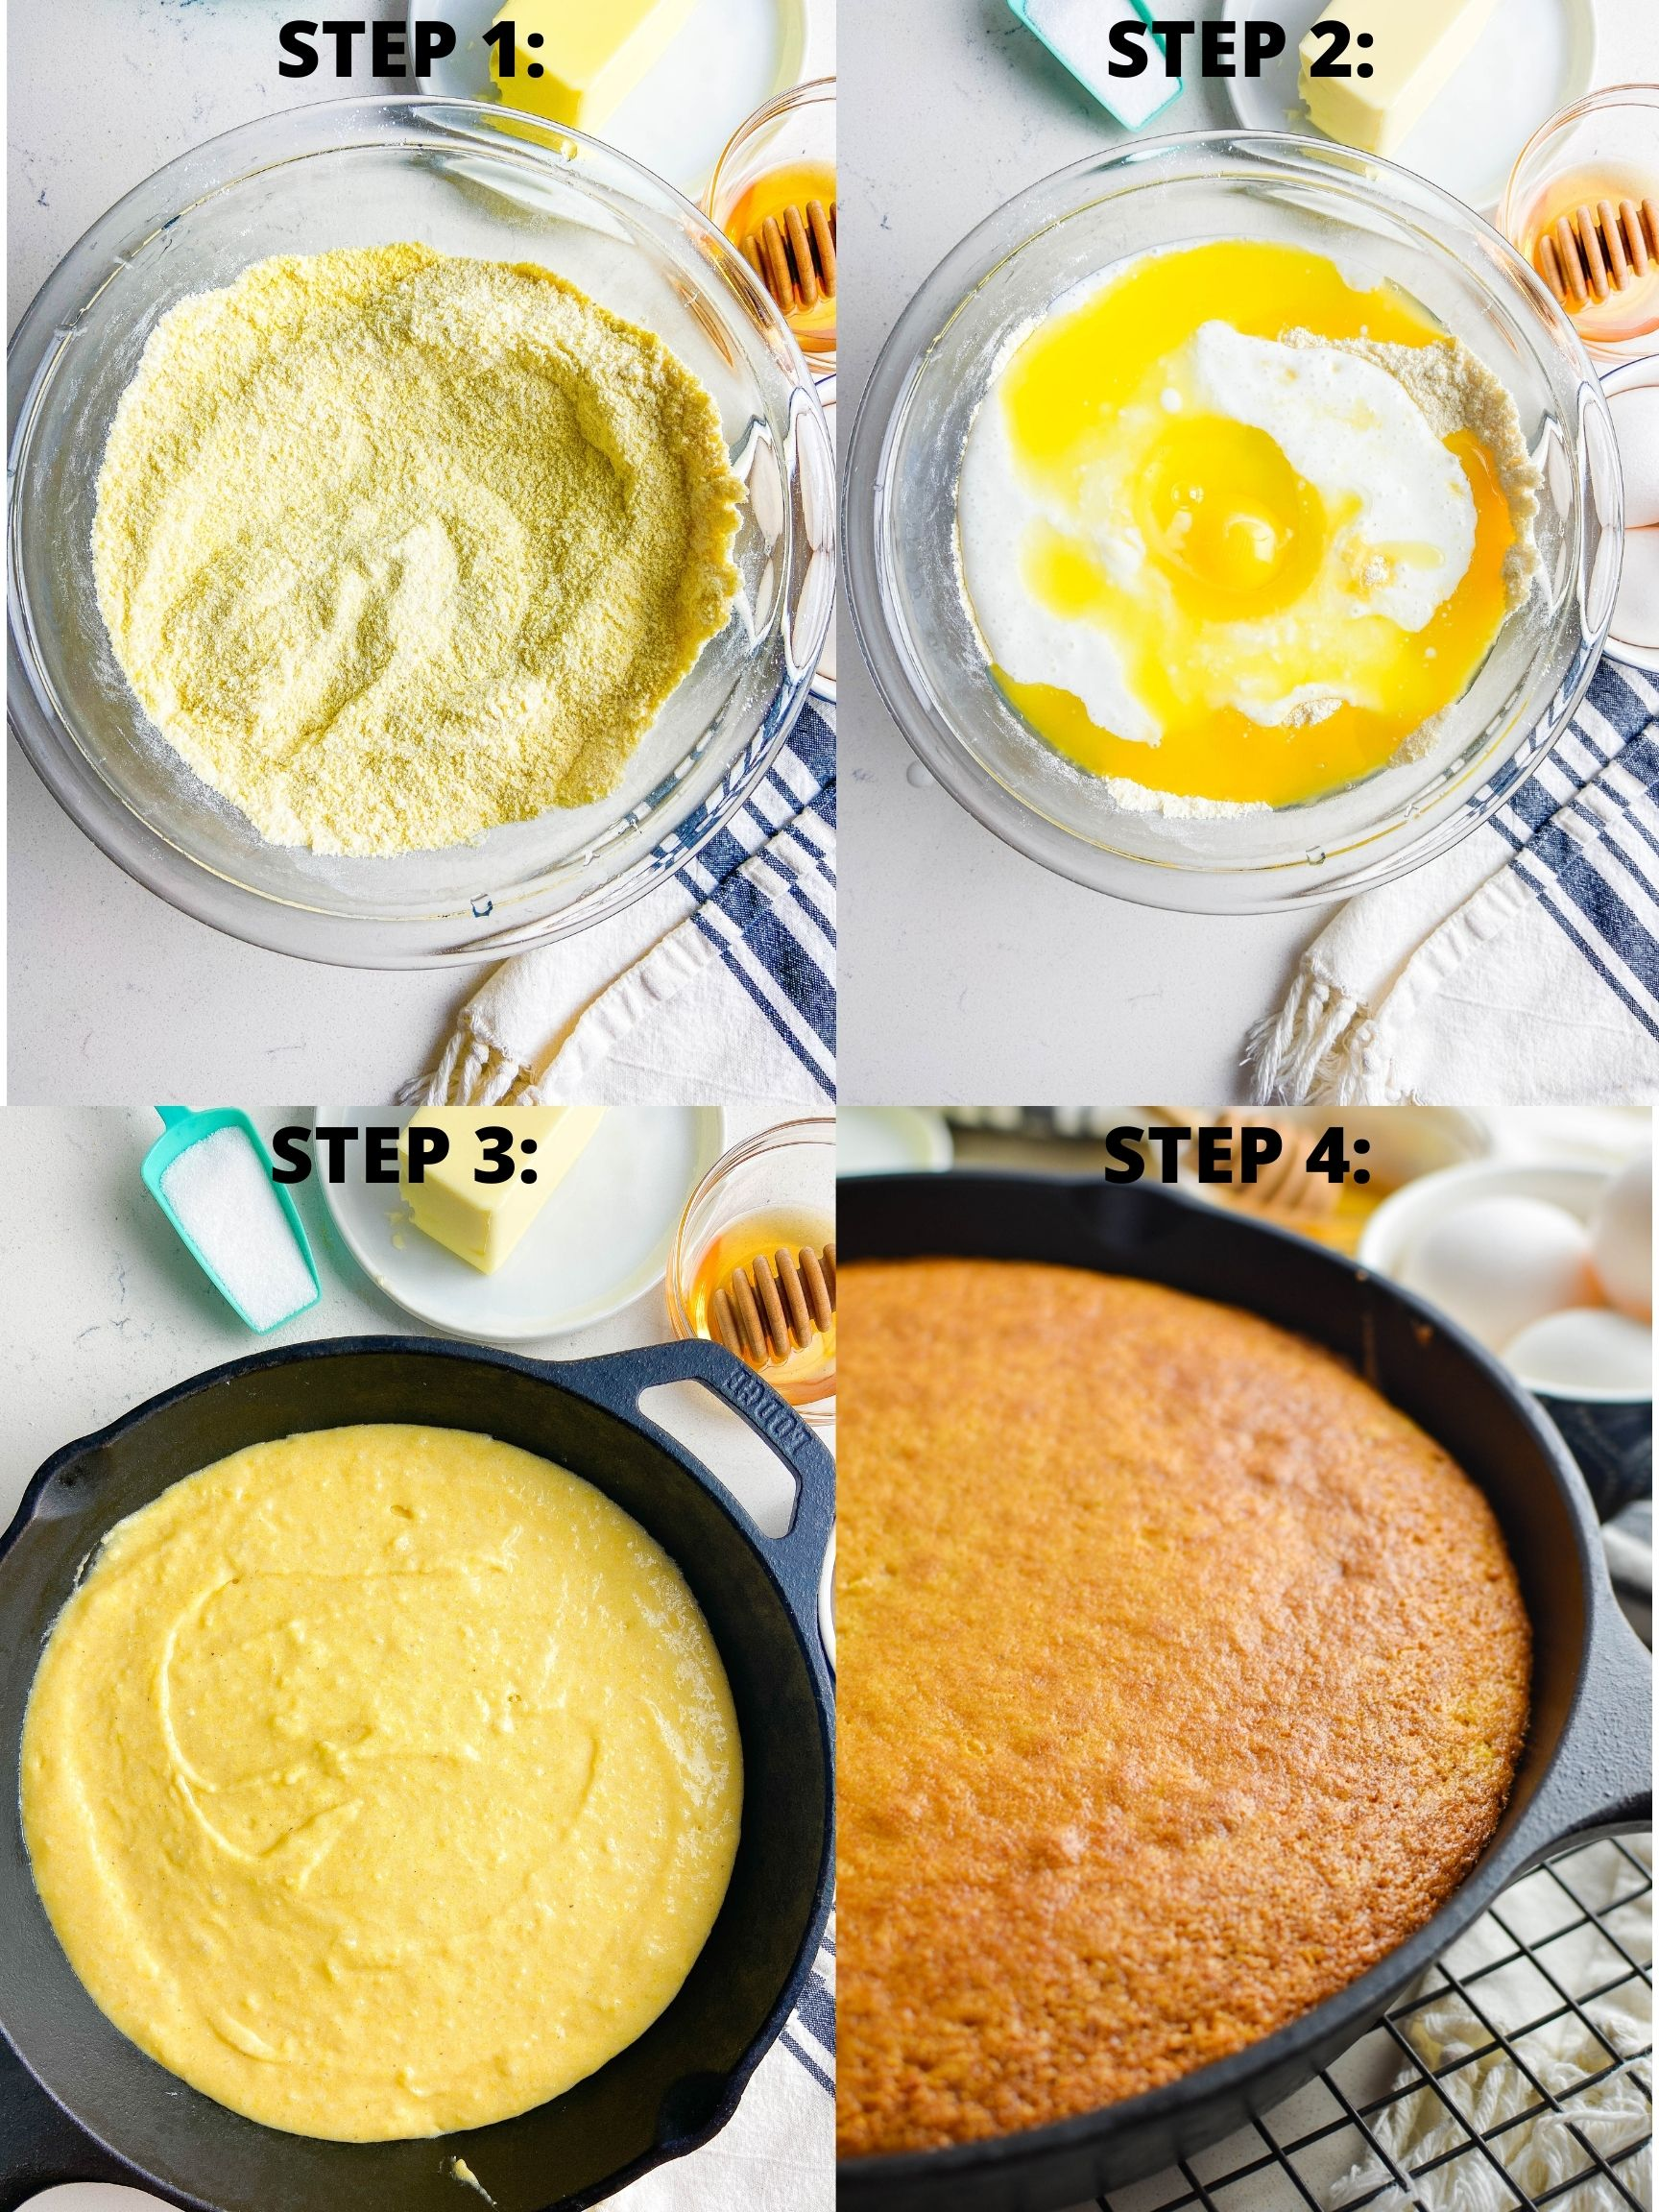 Step by step photos showing how to make skillet cornbread.